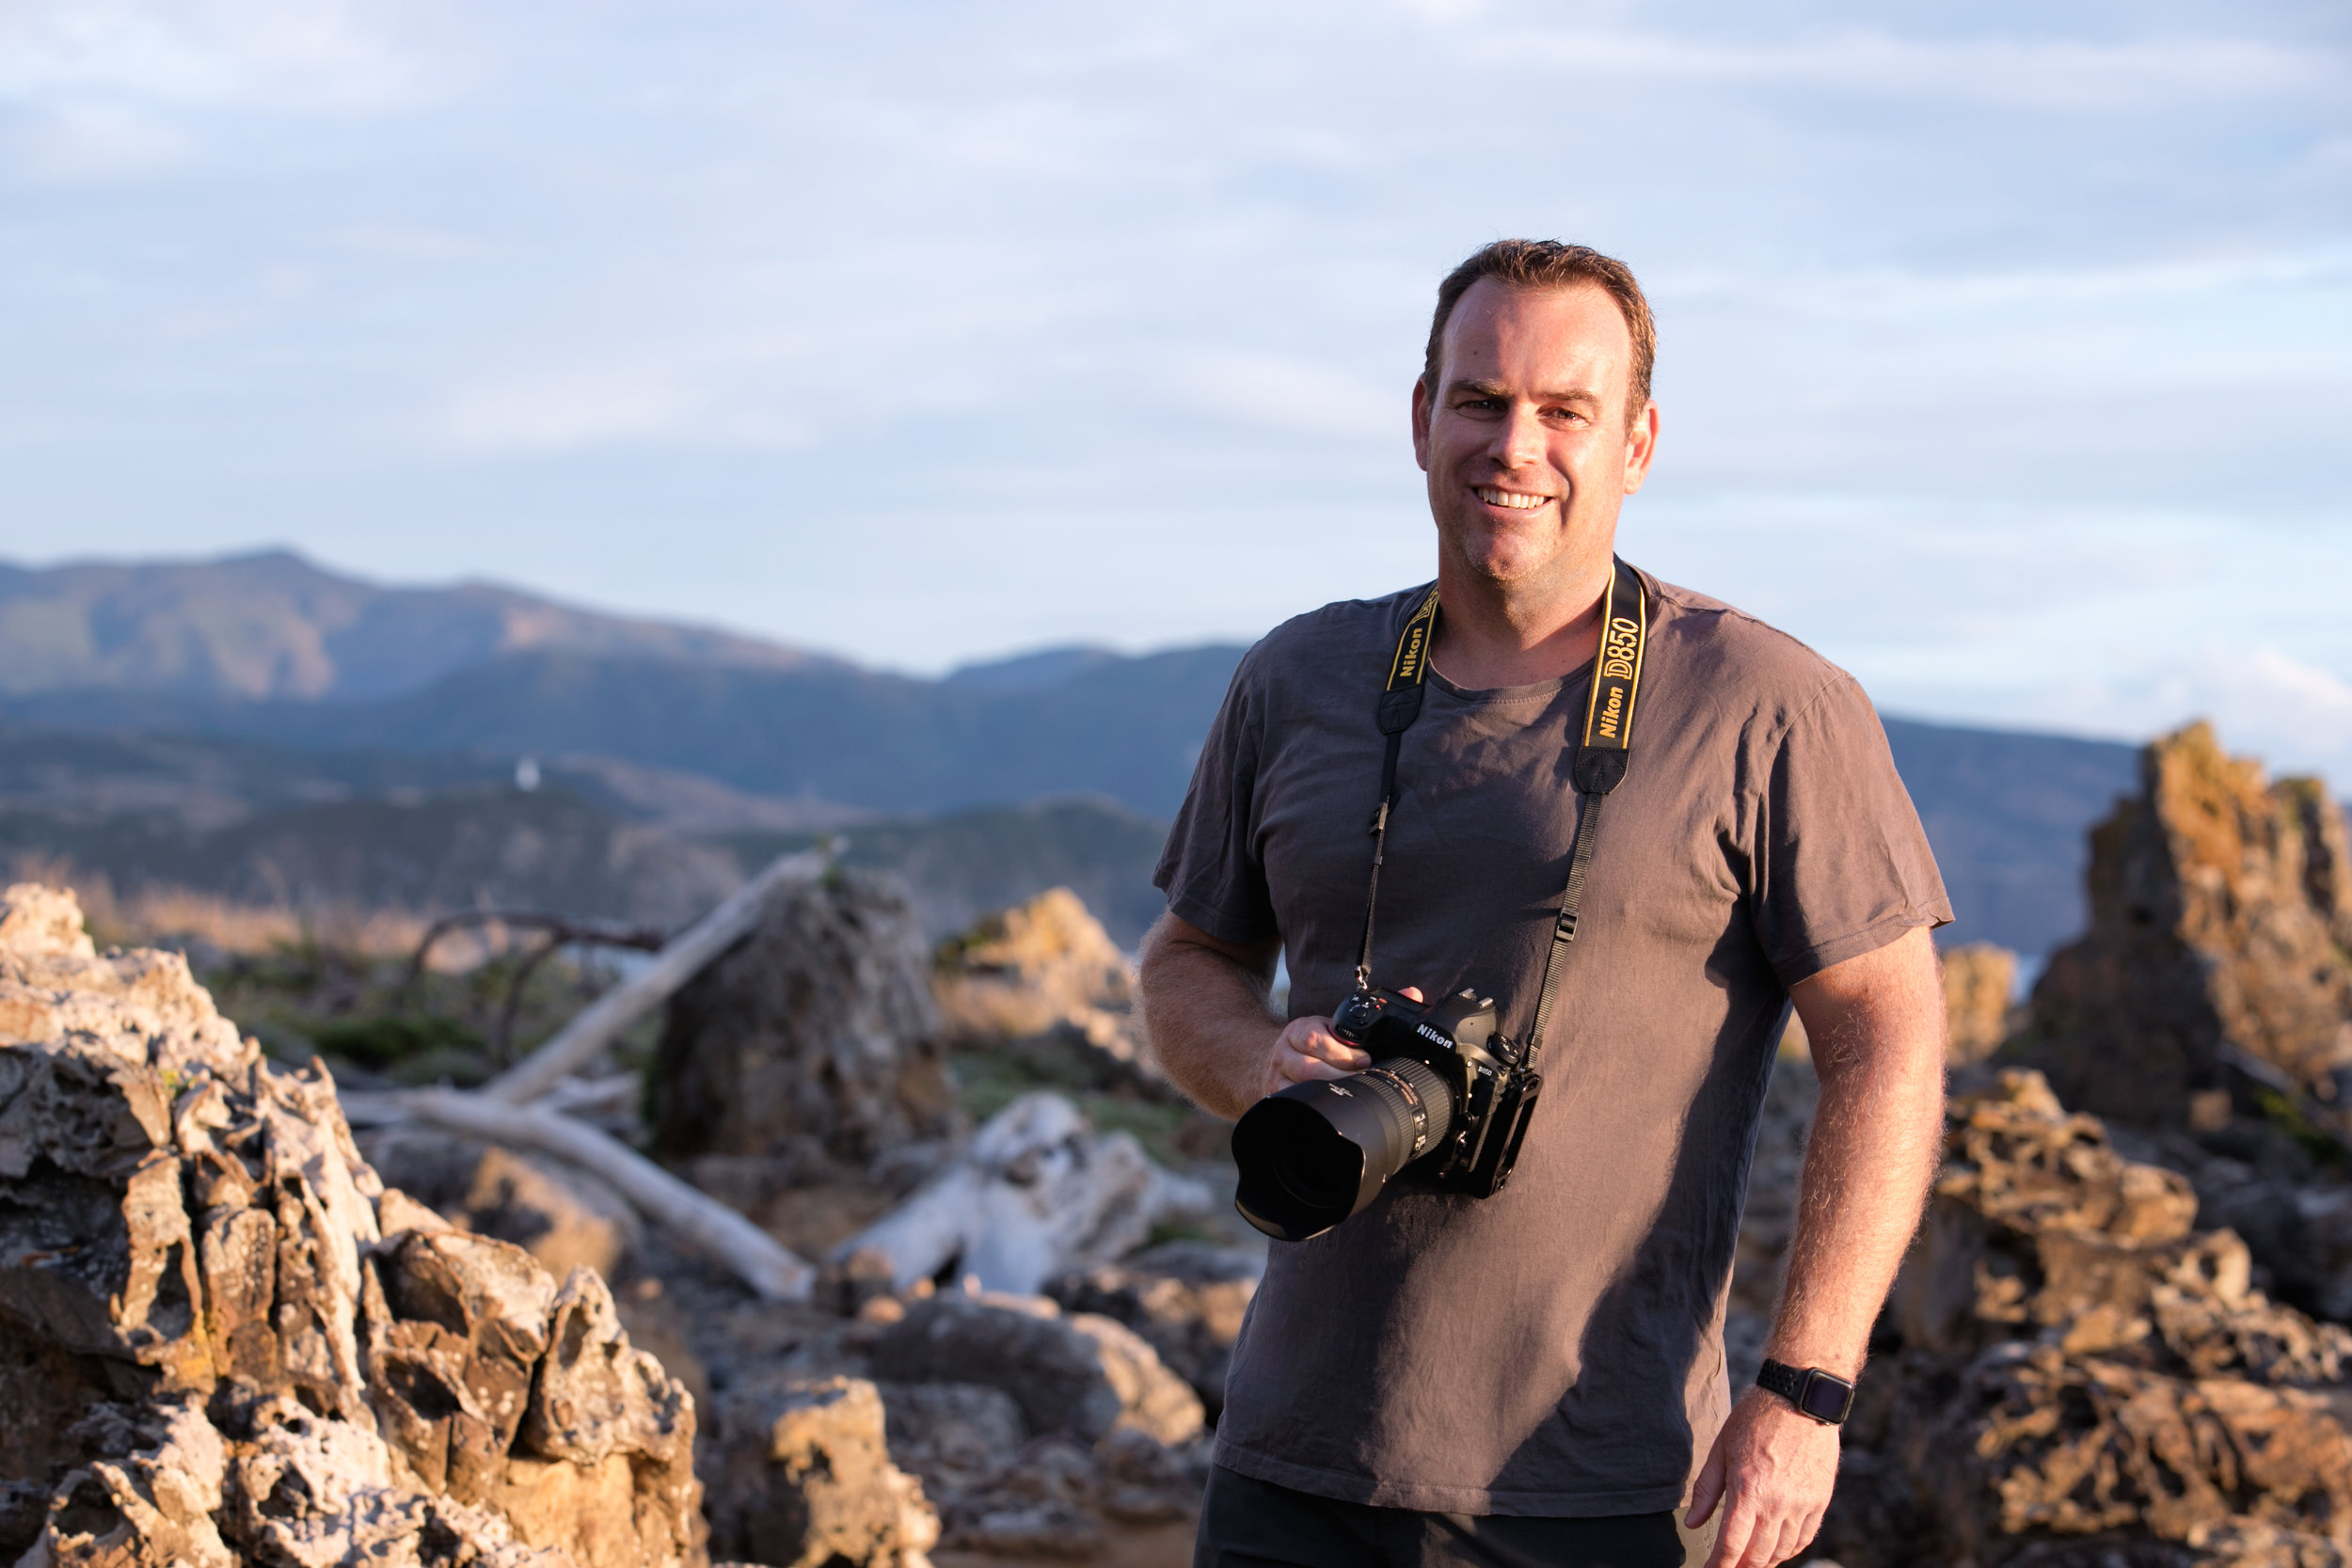 Mark Gee, astrophotographer and Hutt2019 speaker